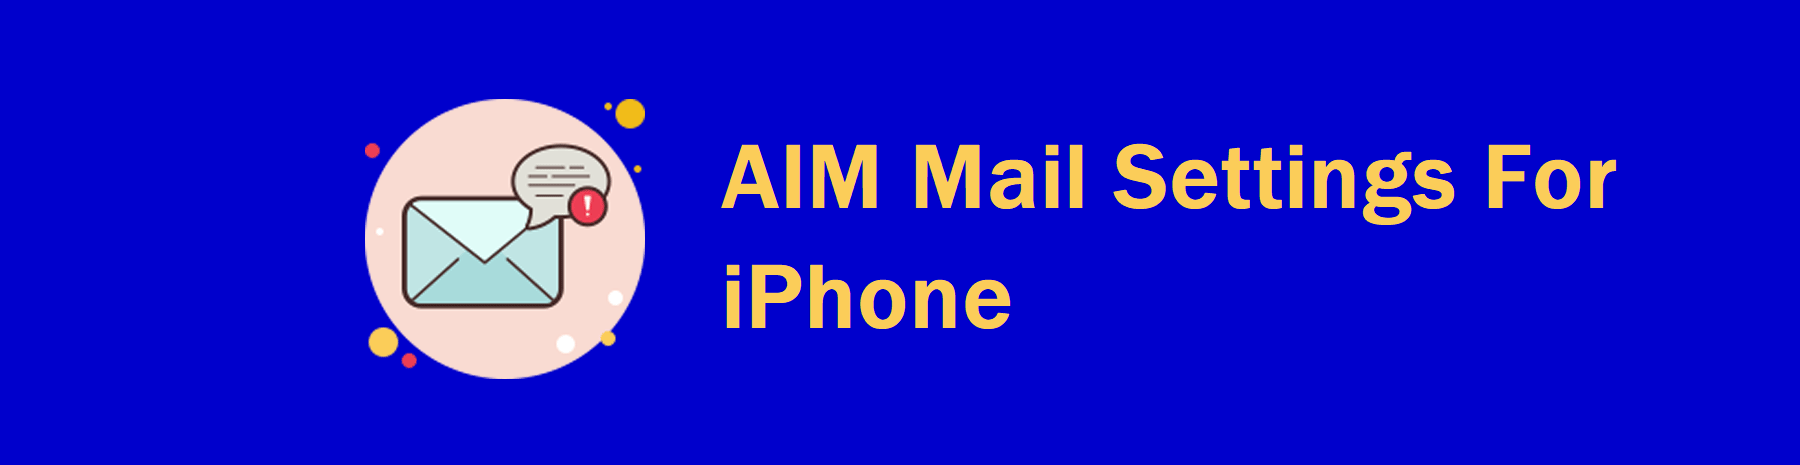 AIM Mail On iPhone